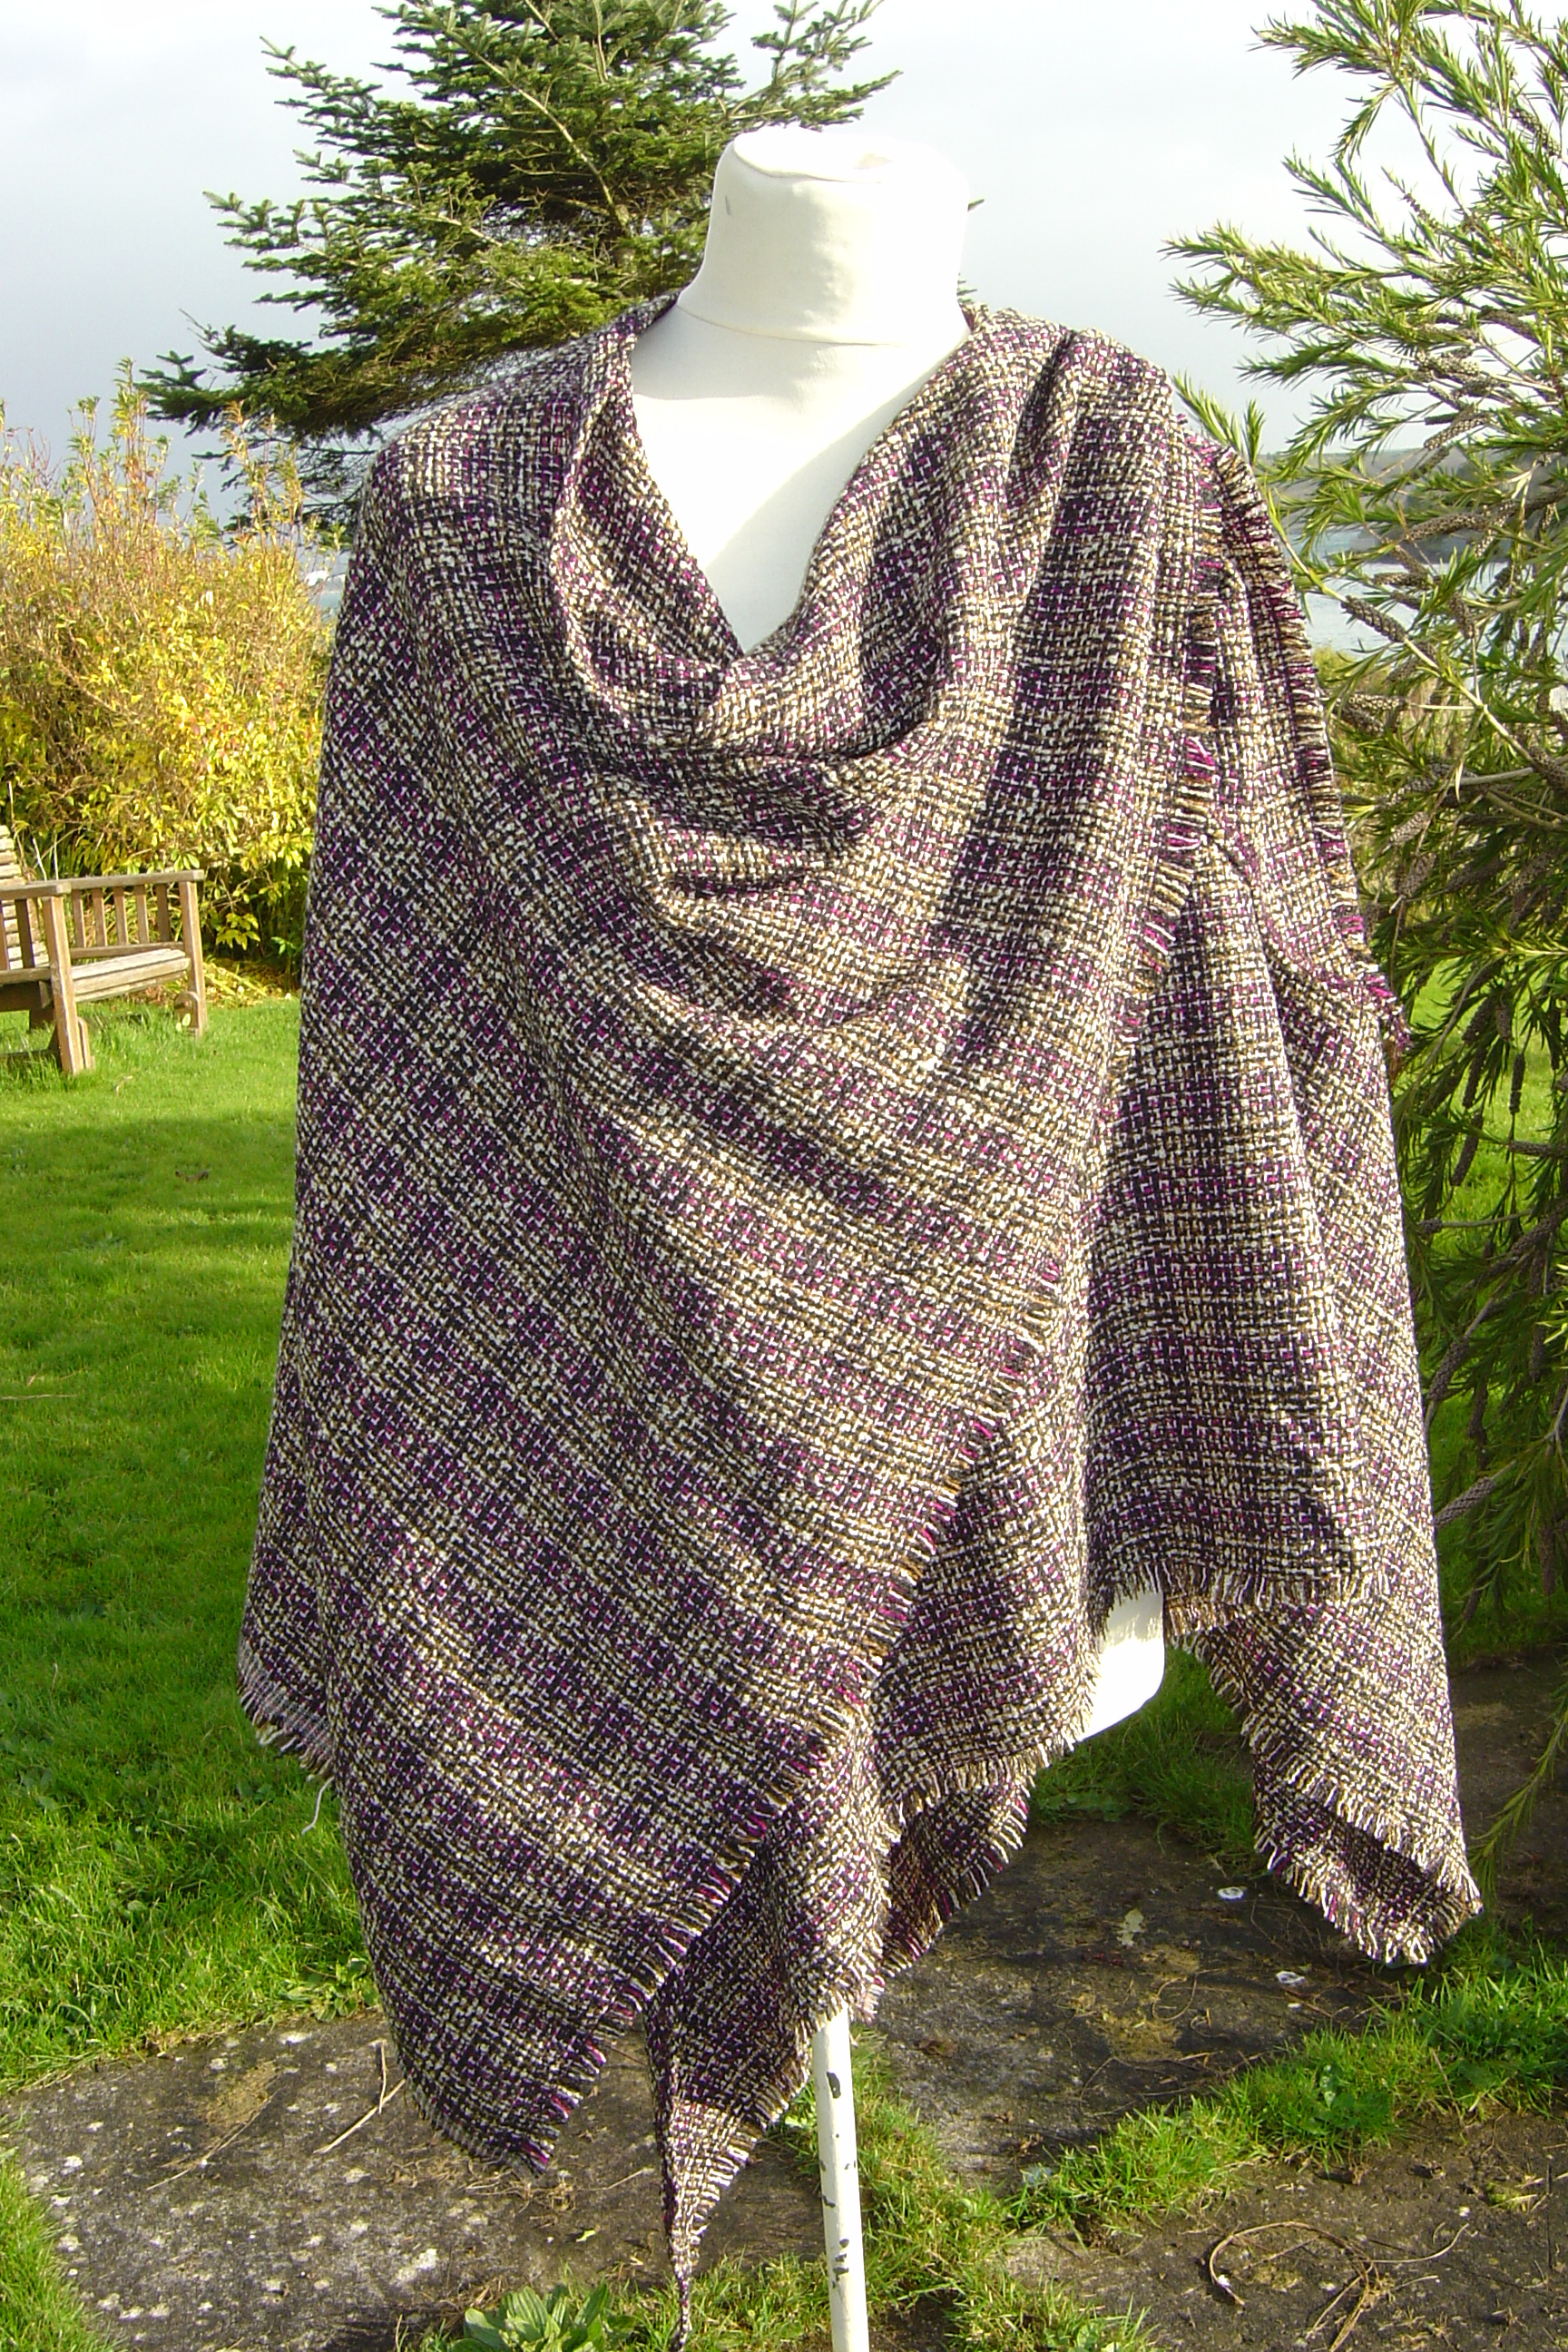 9baaf698c4 ... Celtic Shawl - Item No: 108 handcrafted in Ireland by Siobhan Wear